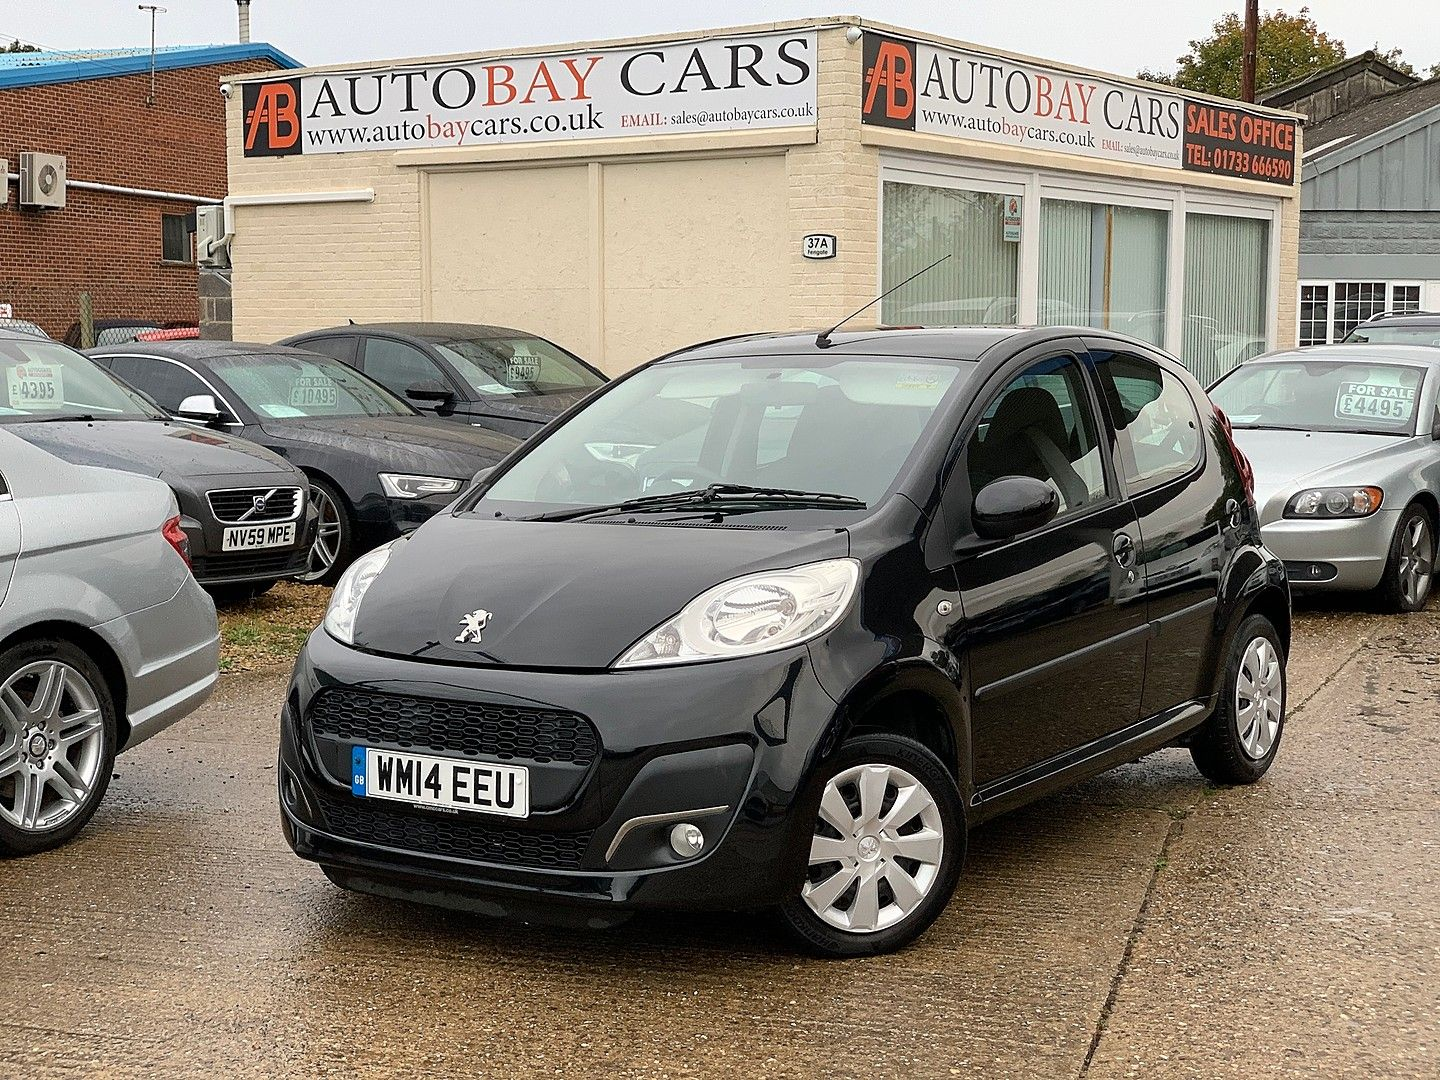 PEUGEOT107Active 1.0 for sale